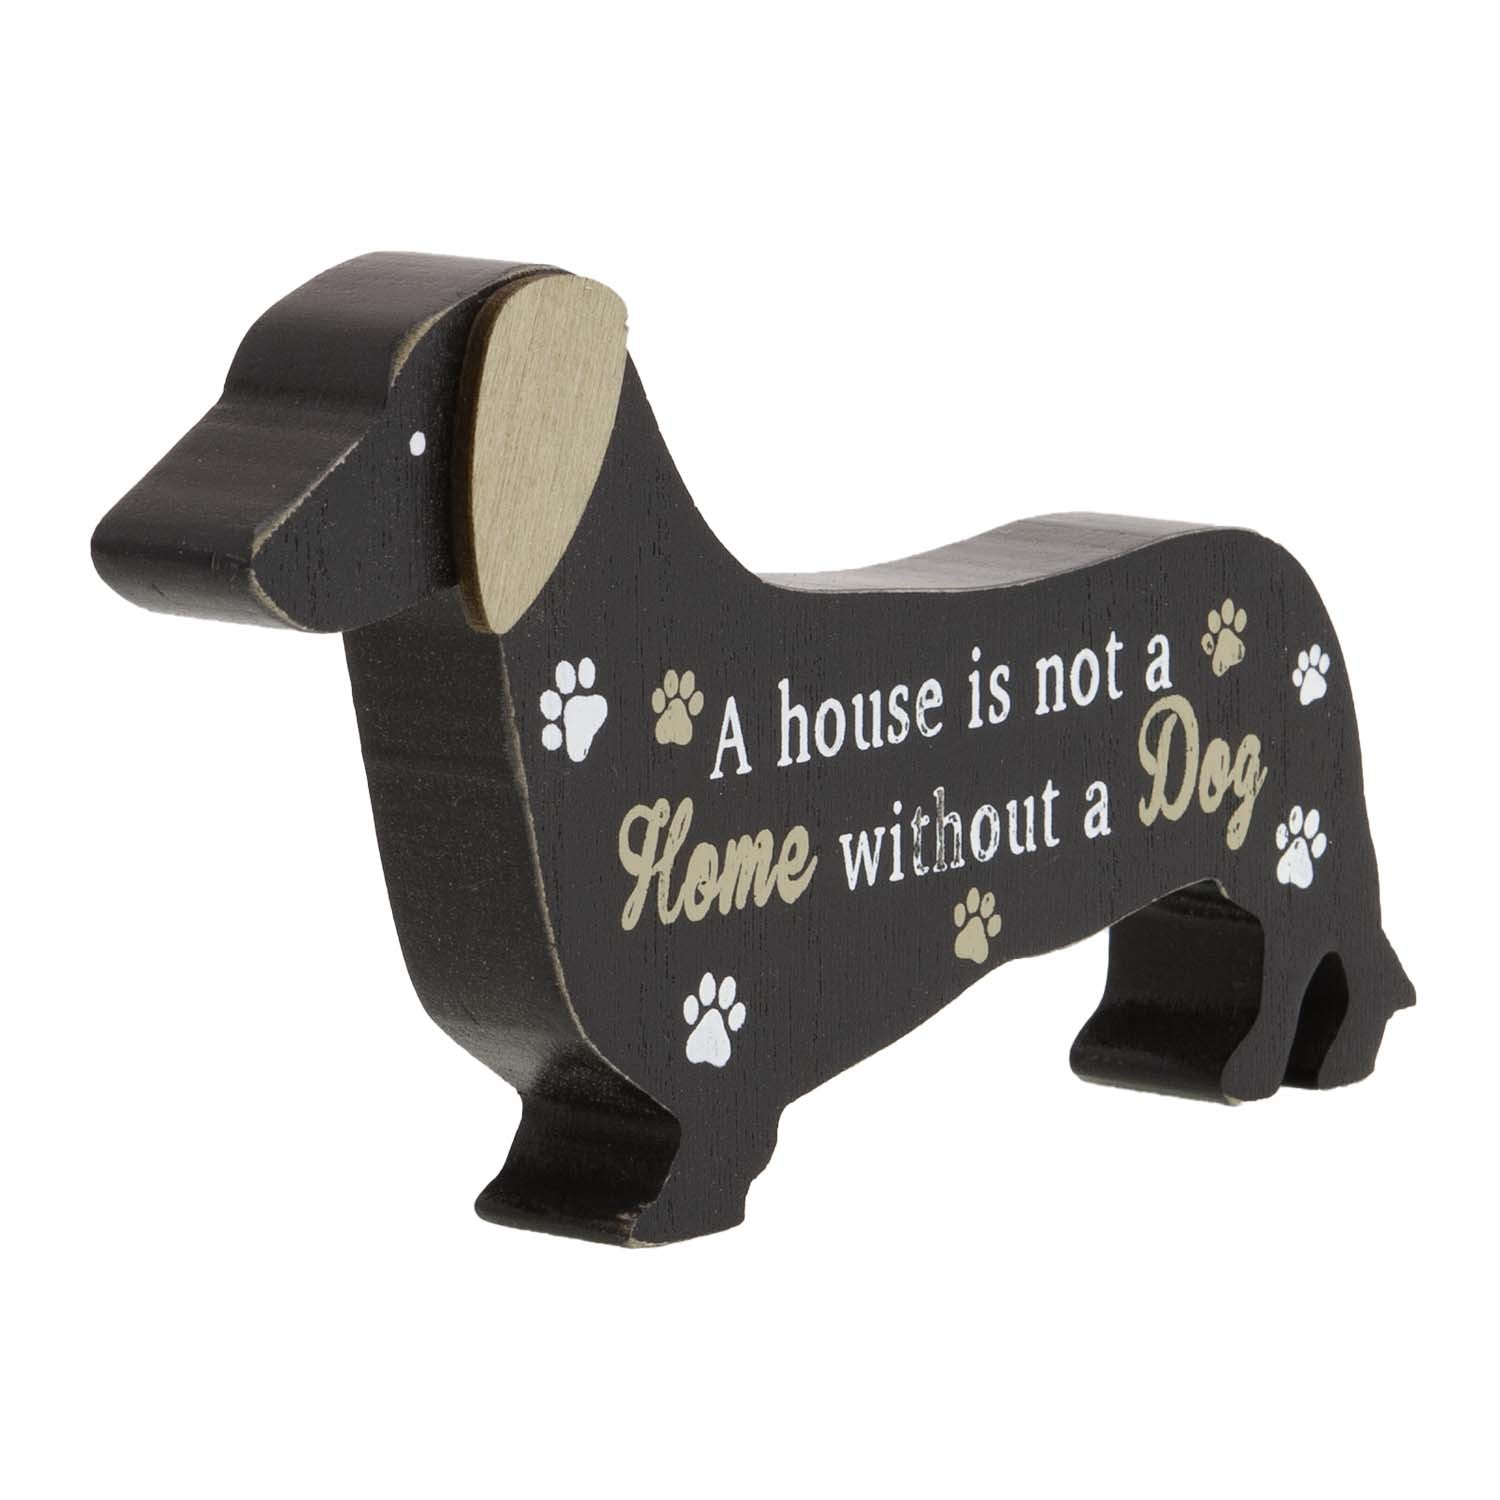 Dog Lover Gifts available at Dog Krazy Gifts – Dachshund Standing Dog Sign, A House is not a a Home Without a Dog, Just Part Of Our Collection Of Signs Available At www.dogkrazygifts.co.uk